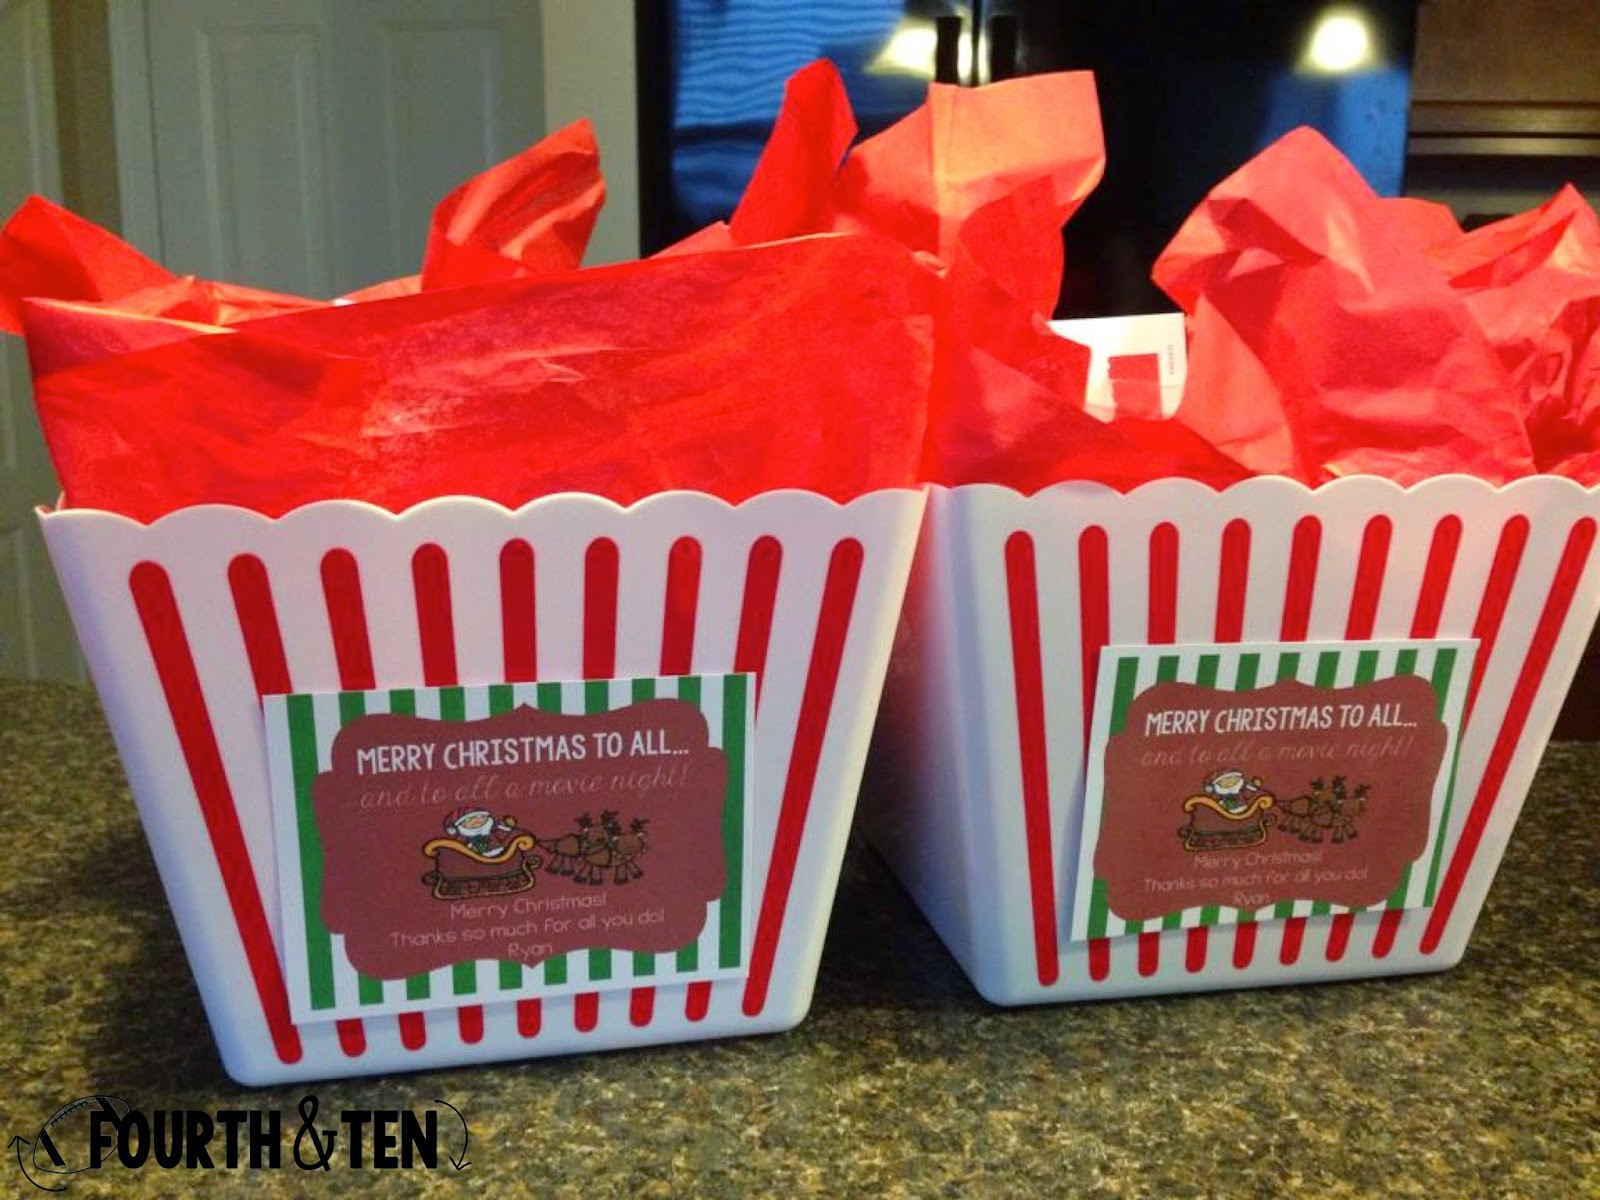 Best ideas about DIY Christmas Gifts For Coworkers . Save or Pin Fourth and Ten Homemade Christmas Gifts for Coworkers Now.